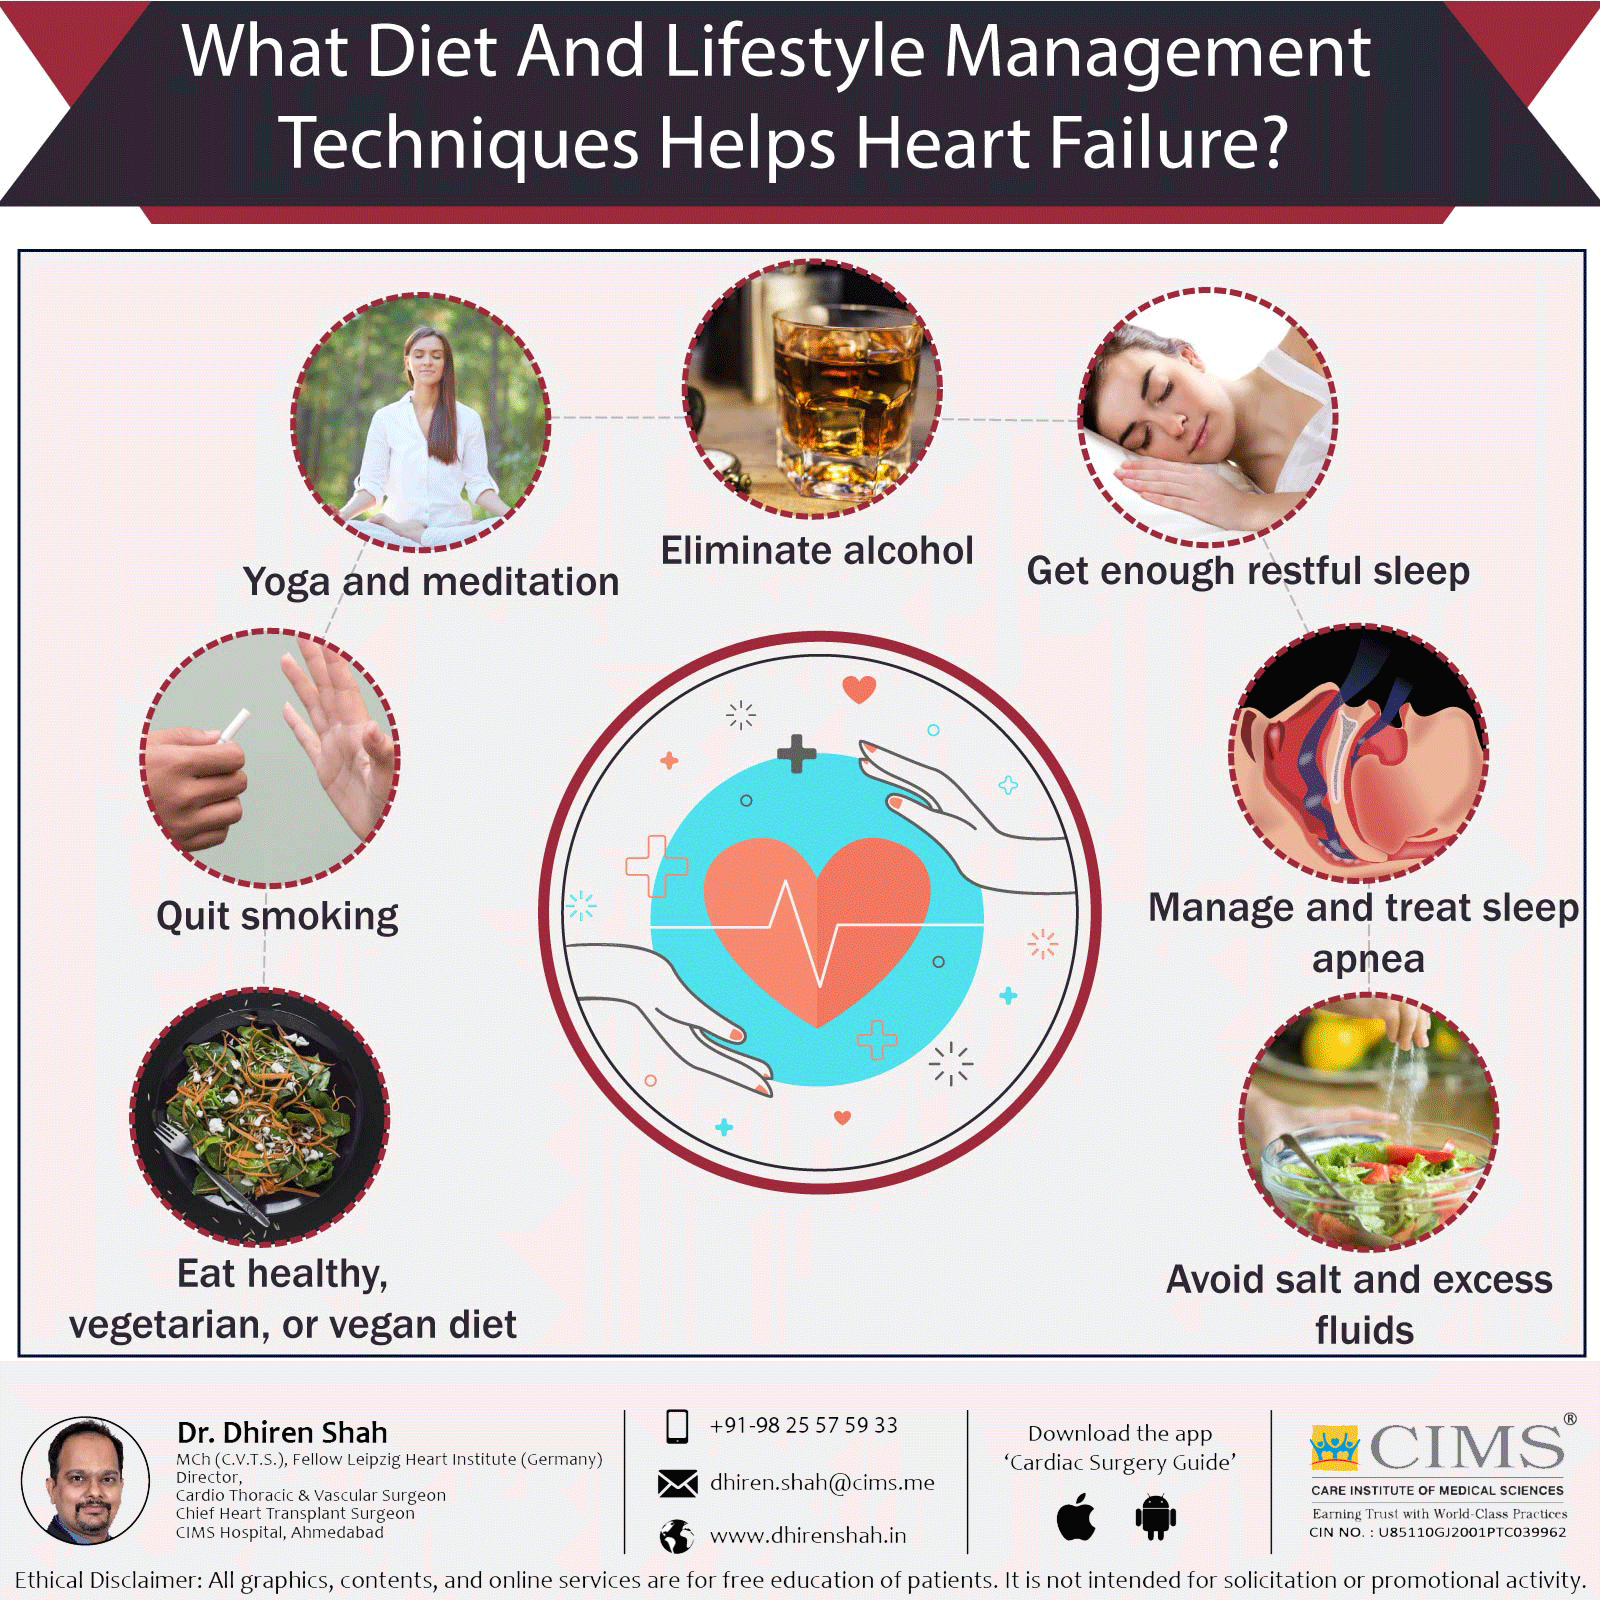 What diet and lifestyle management techniques helps heart failure?